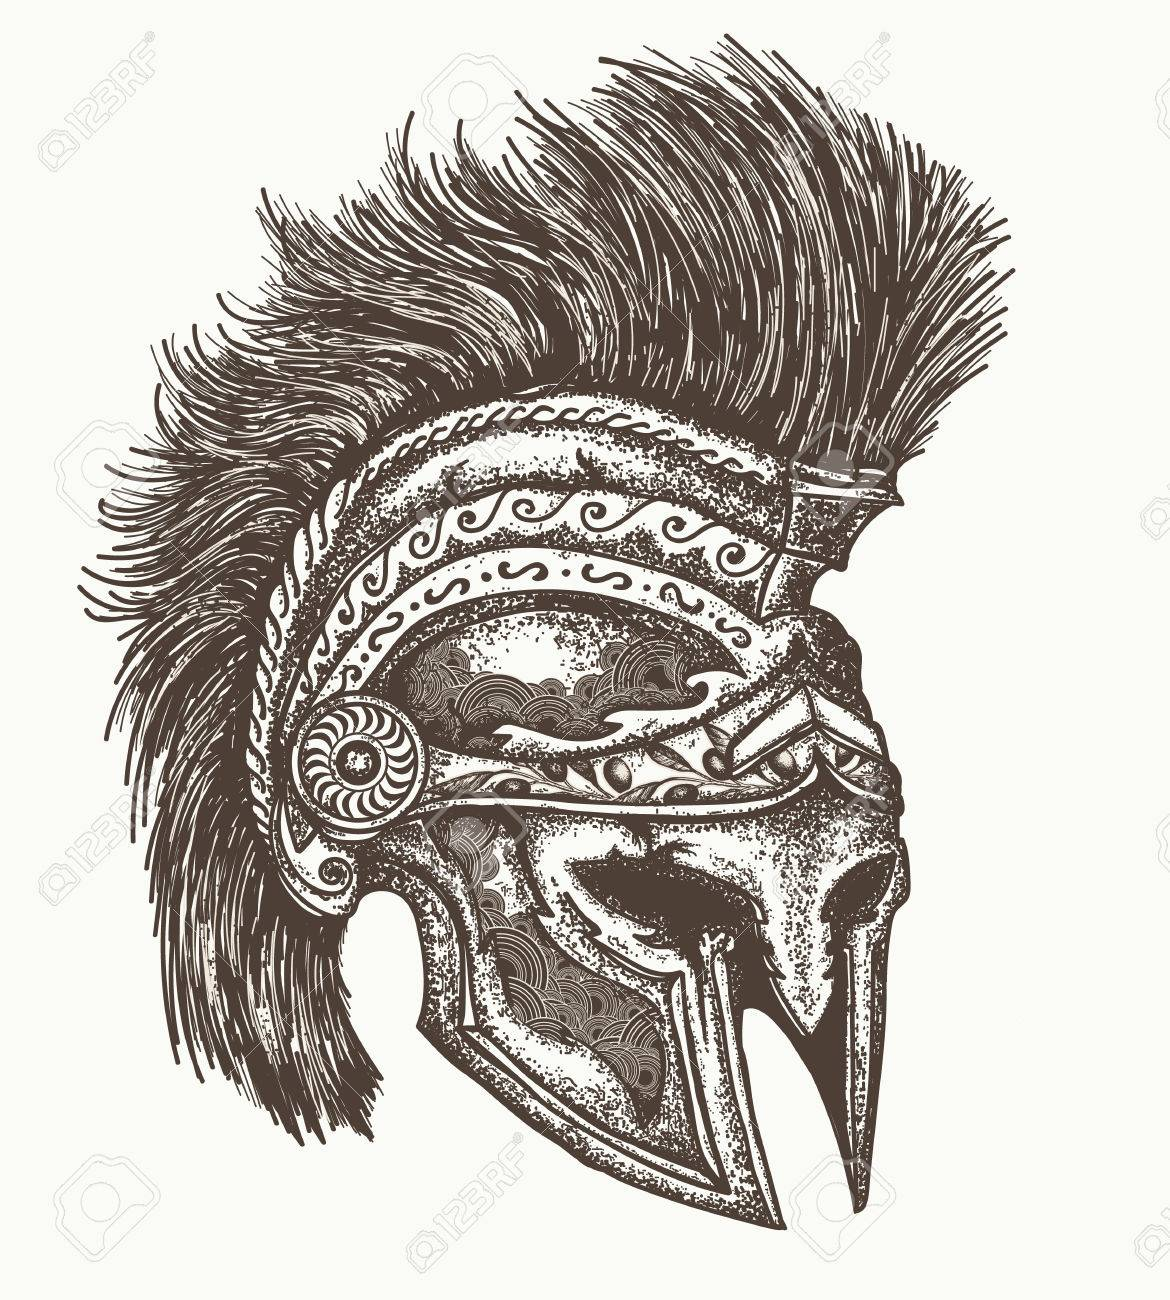 Ancient Spartan Helmet Hand Drawn Ancient Greek War Helmet Royalty